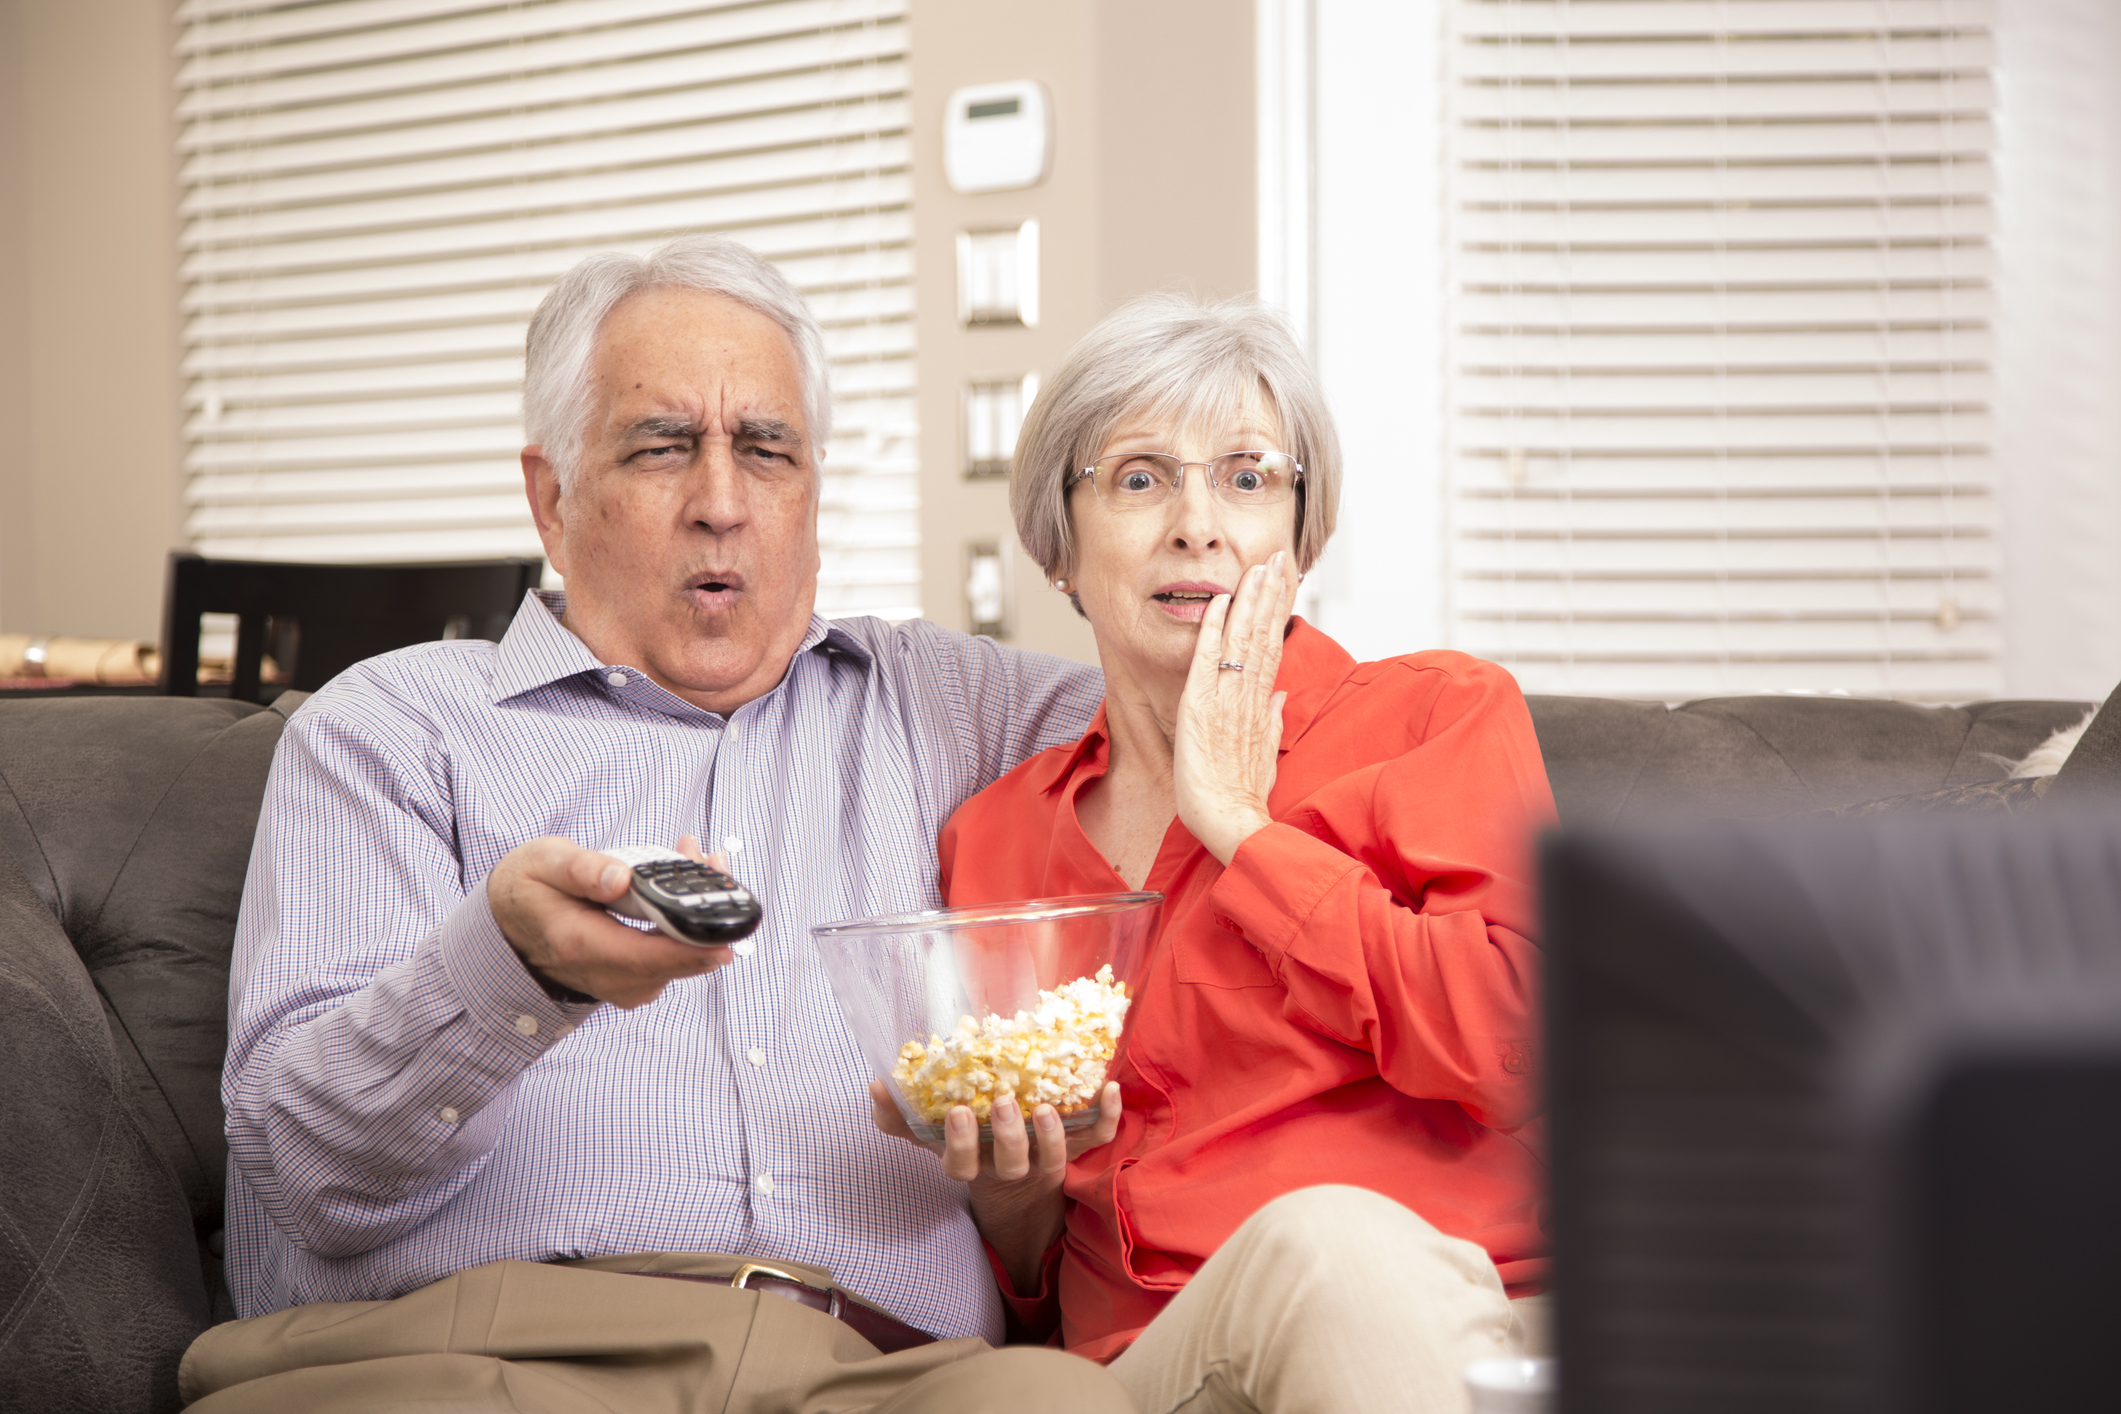 Senior adult couple at home watching television together.